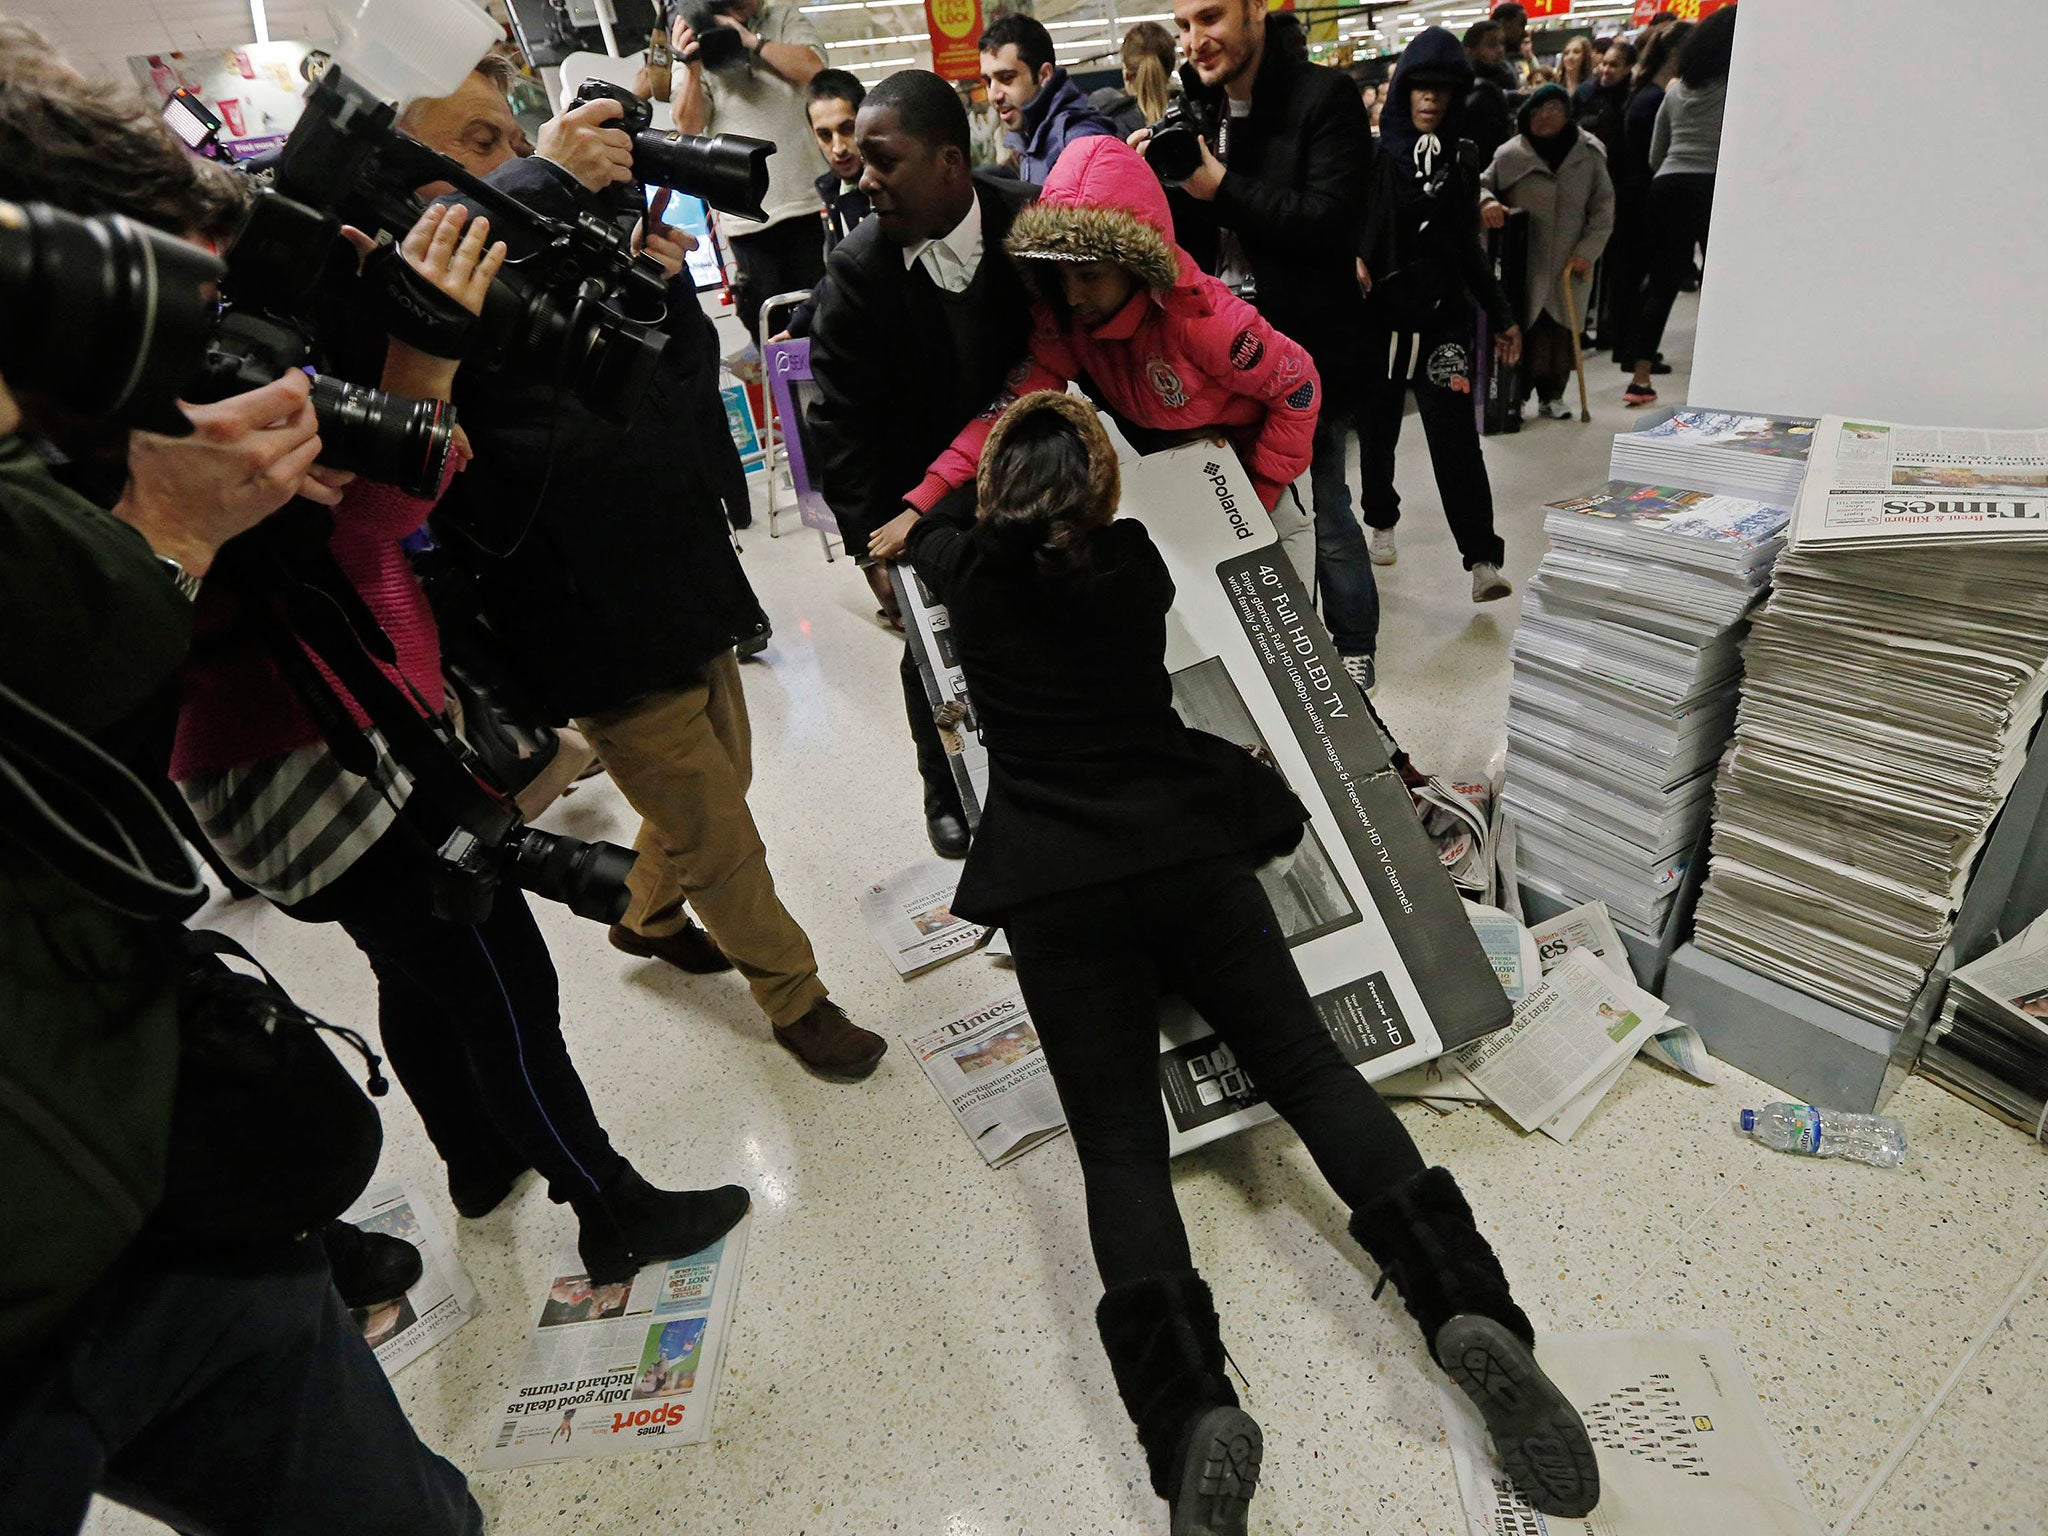 Black Friday Fights Break Out After Shoppers Queue All Night For Bargains The Independent The Independent